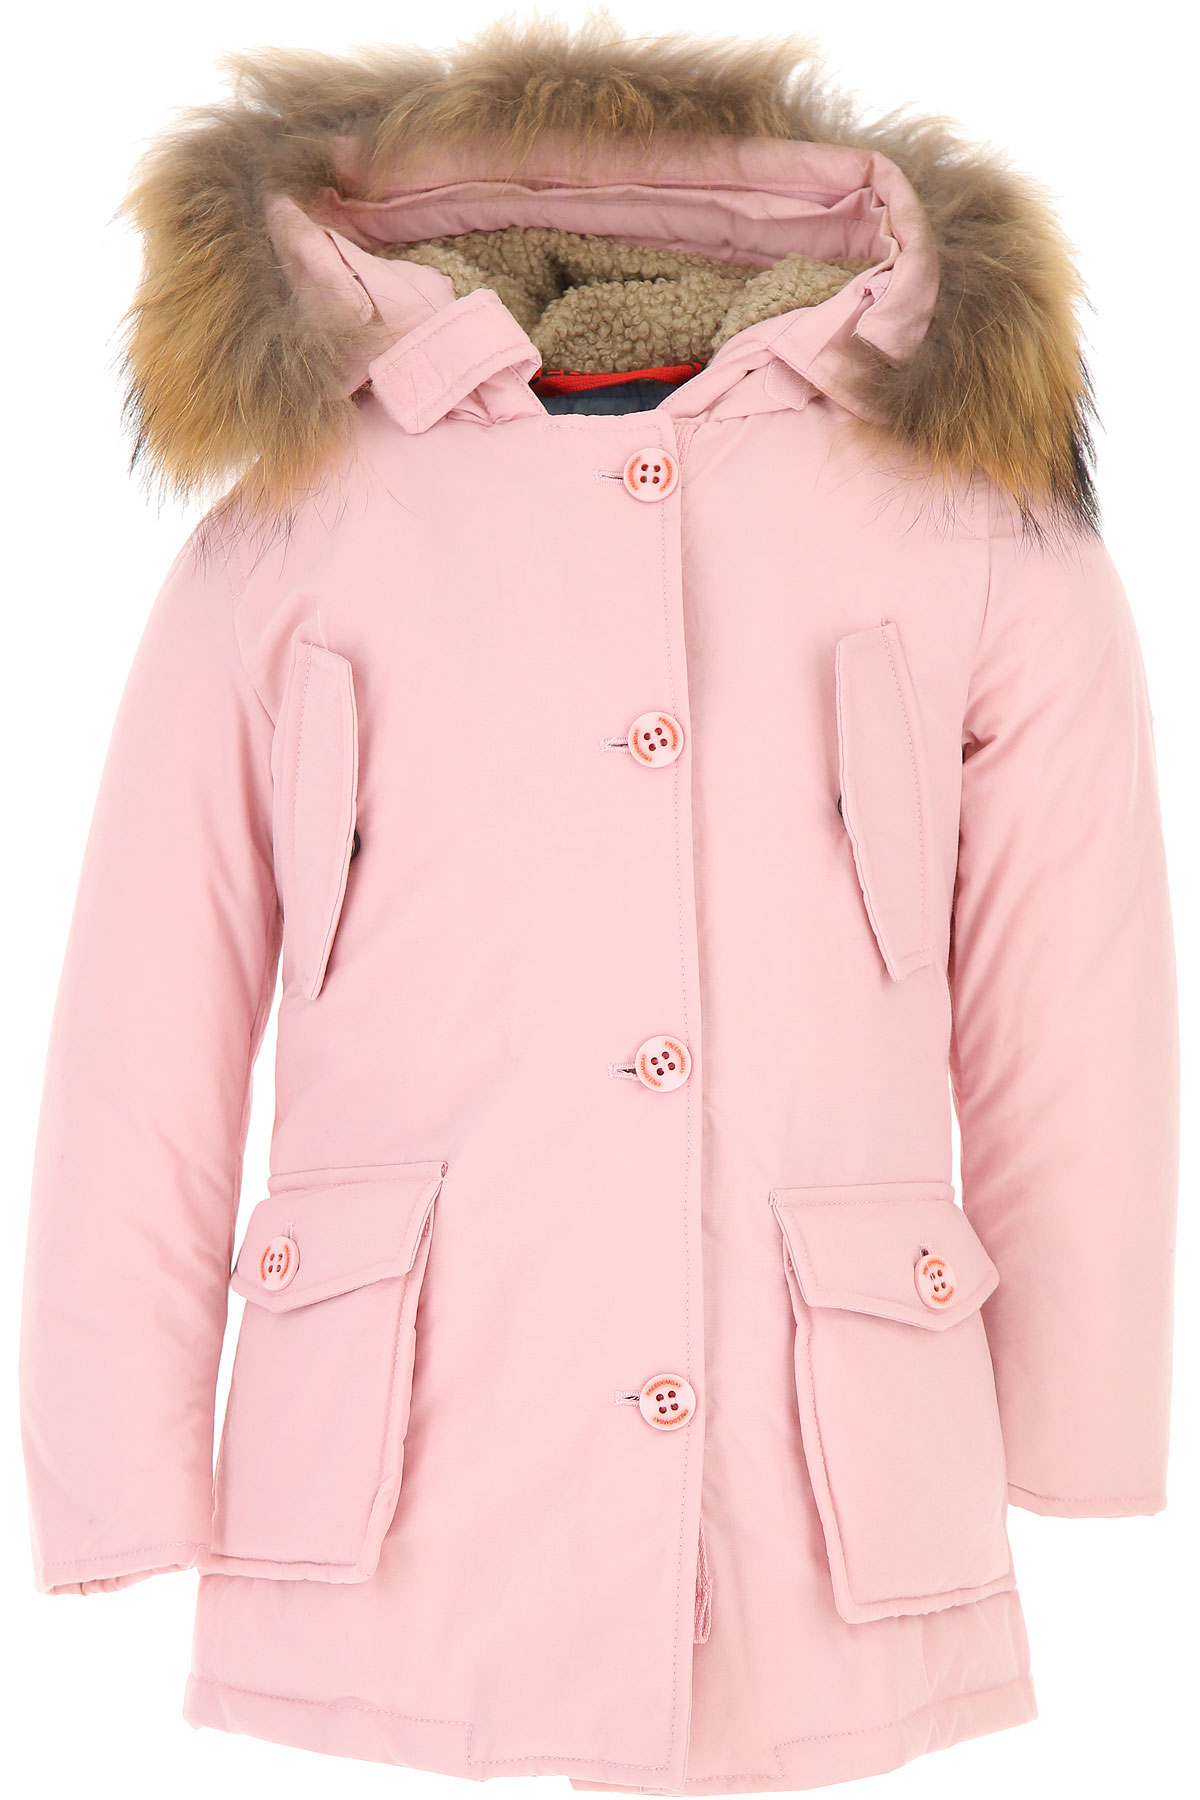 Image of Freedomday Girls Down Jacket for Kids, Puffer Ski Jacket, Pink, Cotton, 2017, 2Y 4Y 6Y